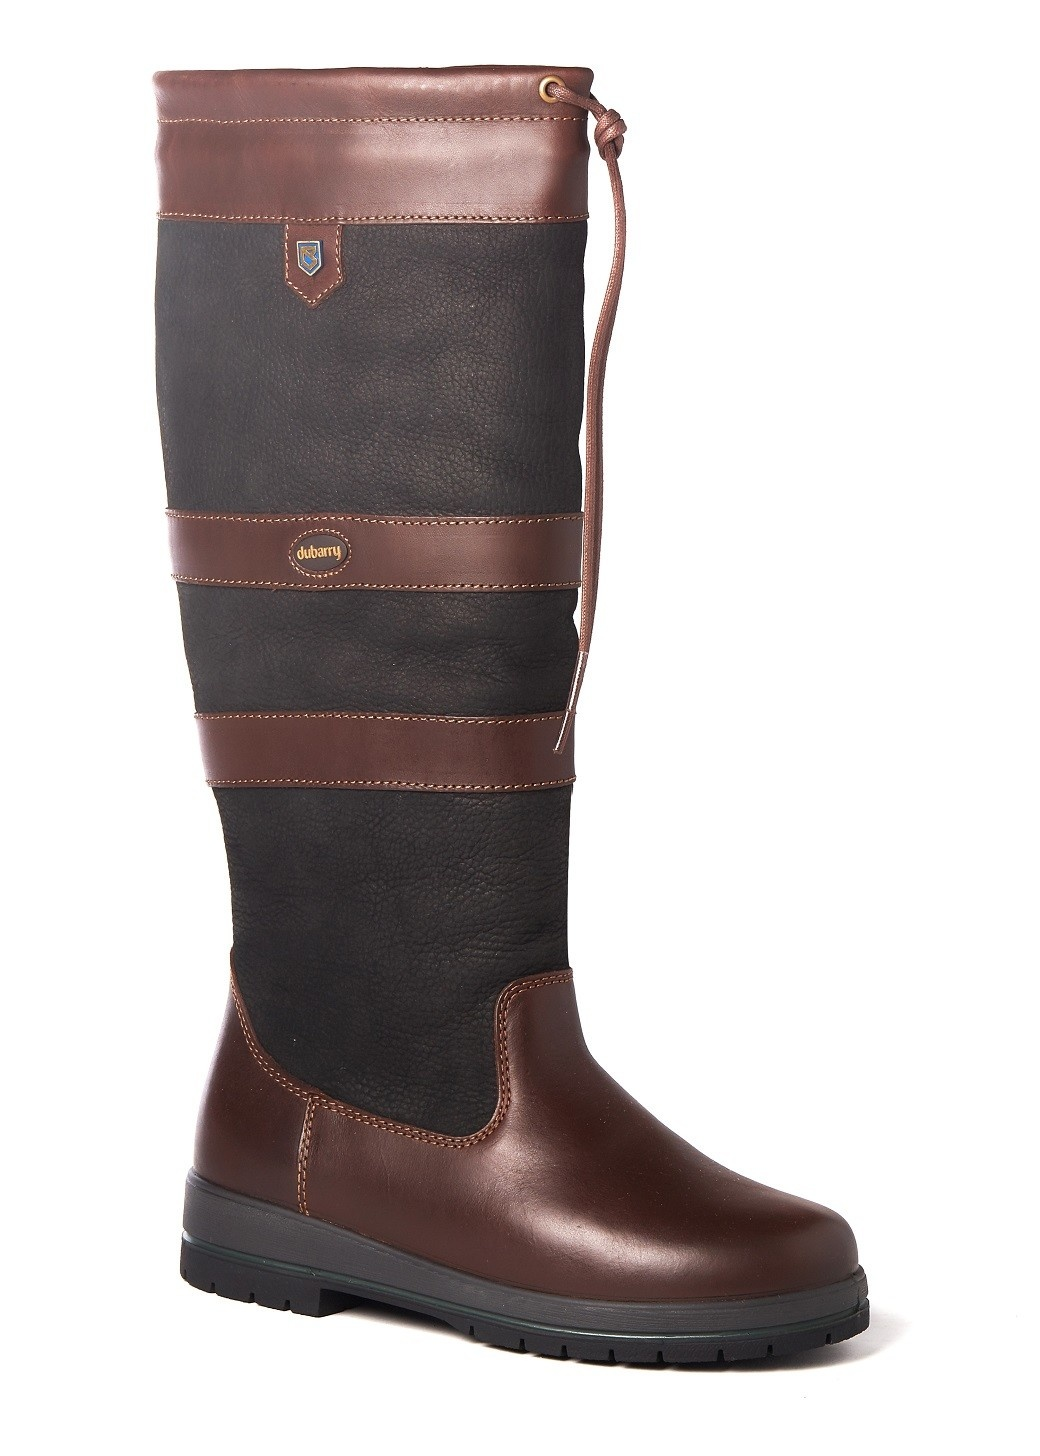 Dubarry Galway Extrafit™- Black/Brown-2